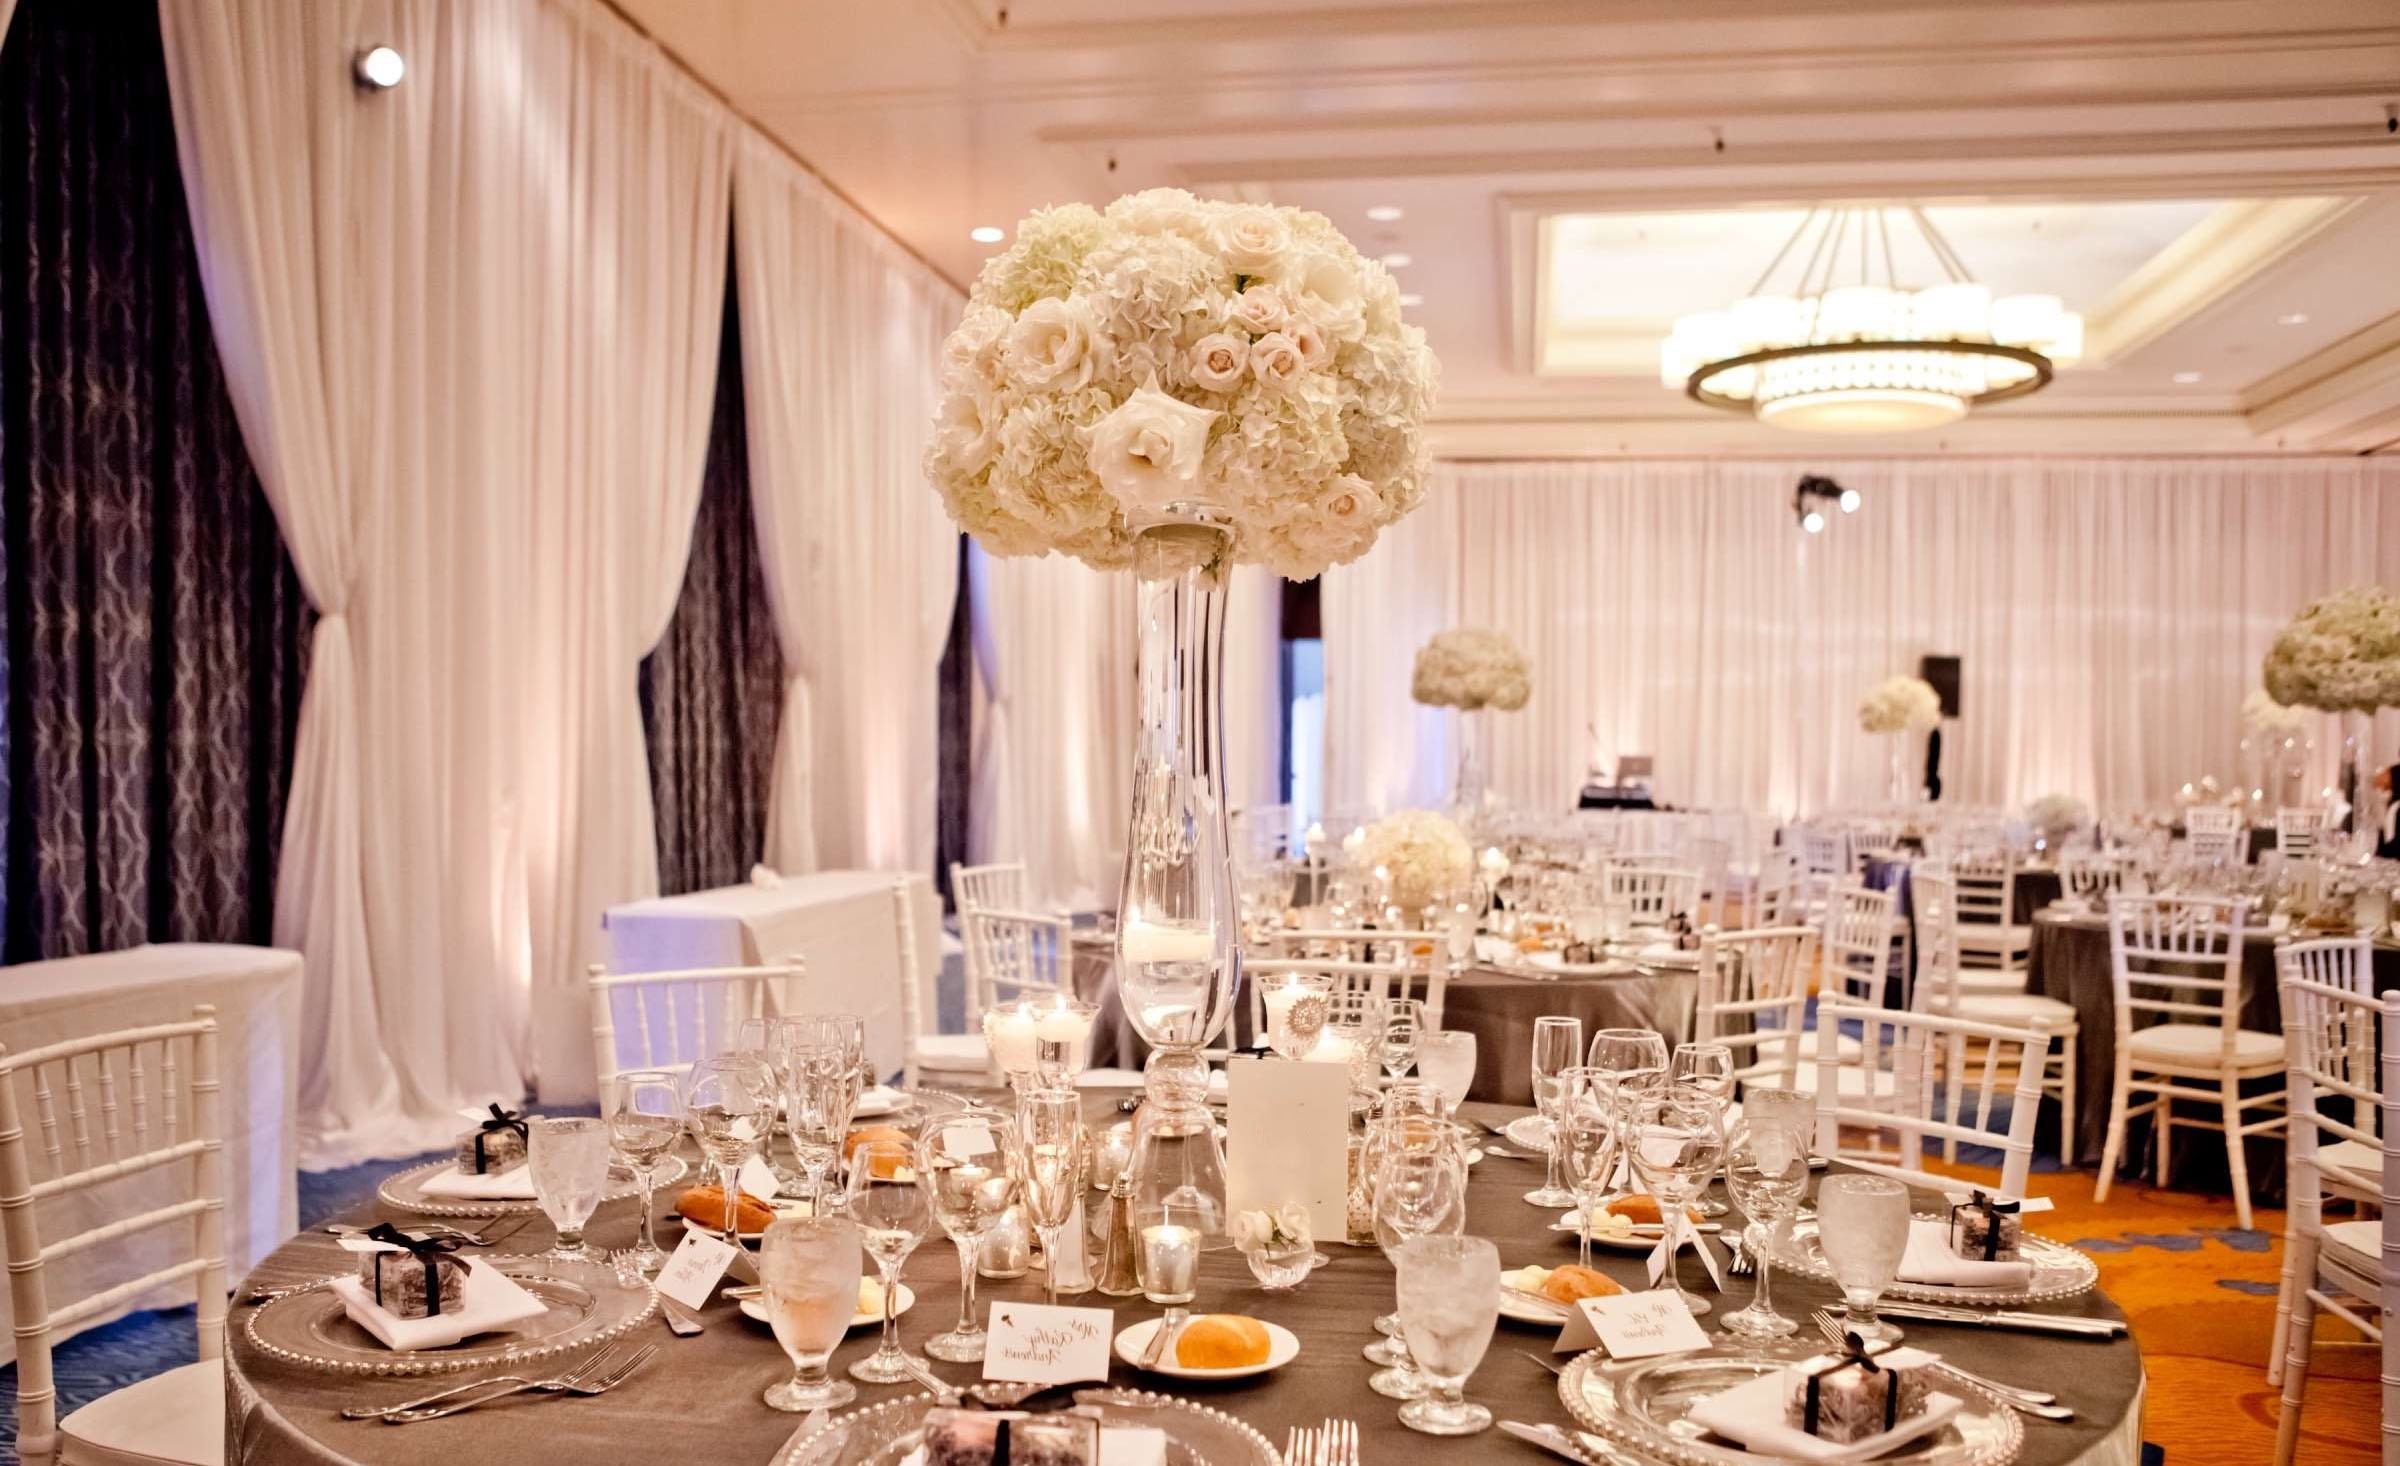 Luxury Tall Flower Arrangements Centerpieces (View 8 of 30)